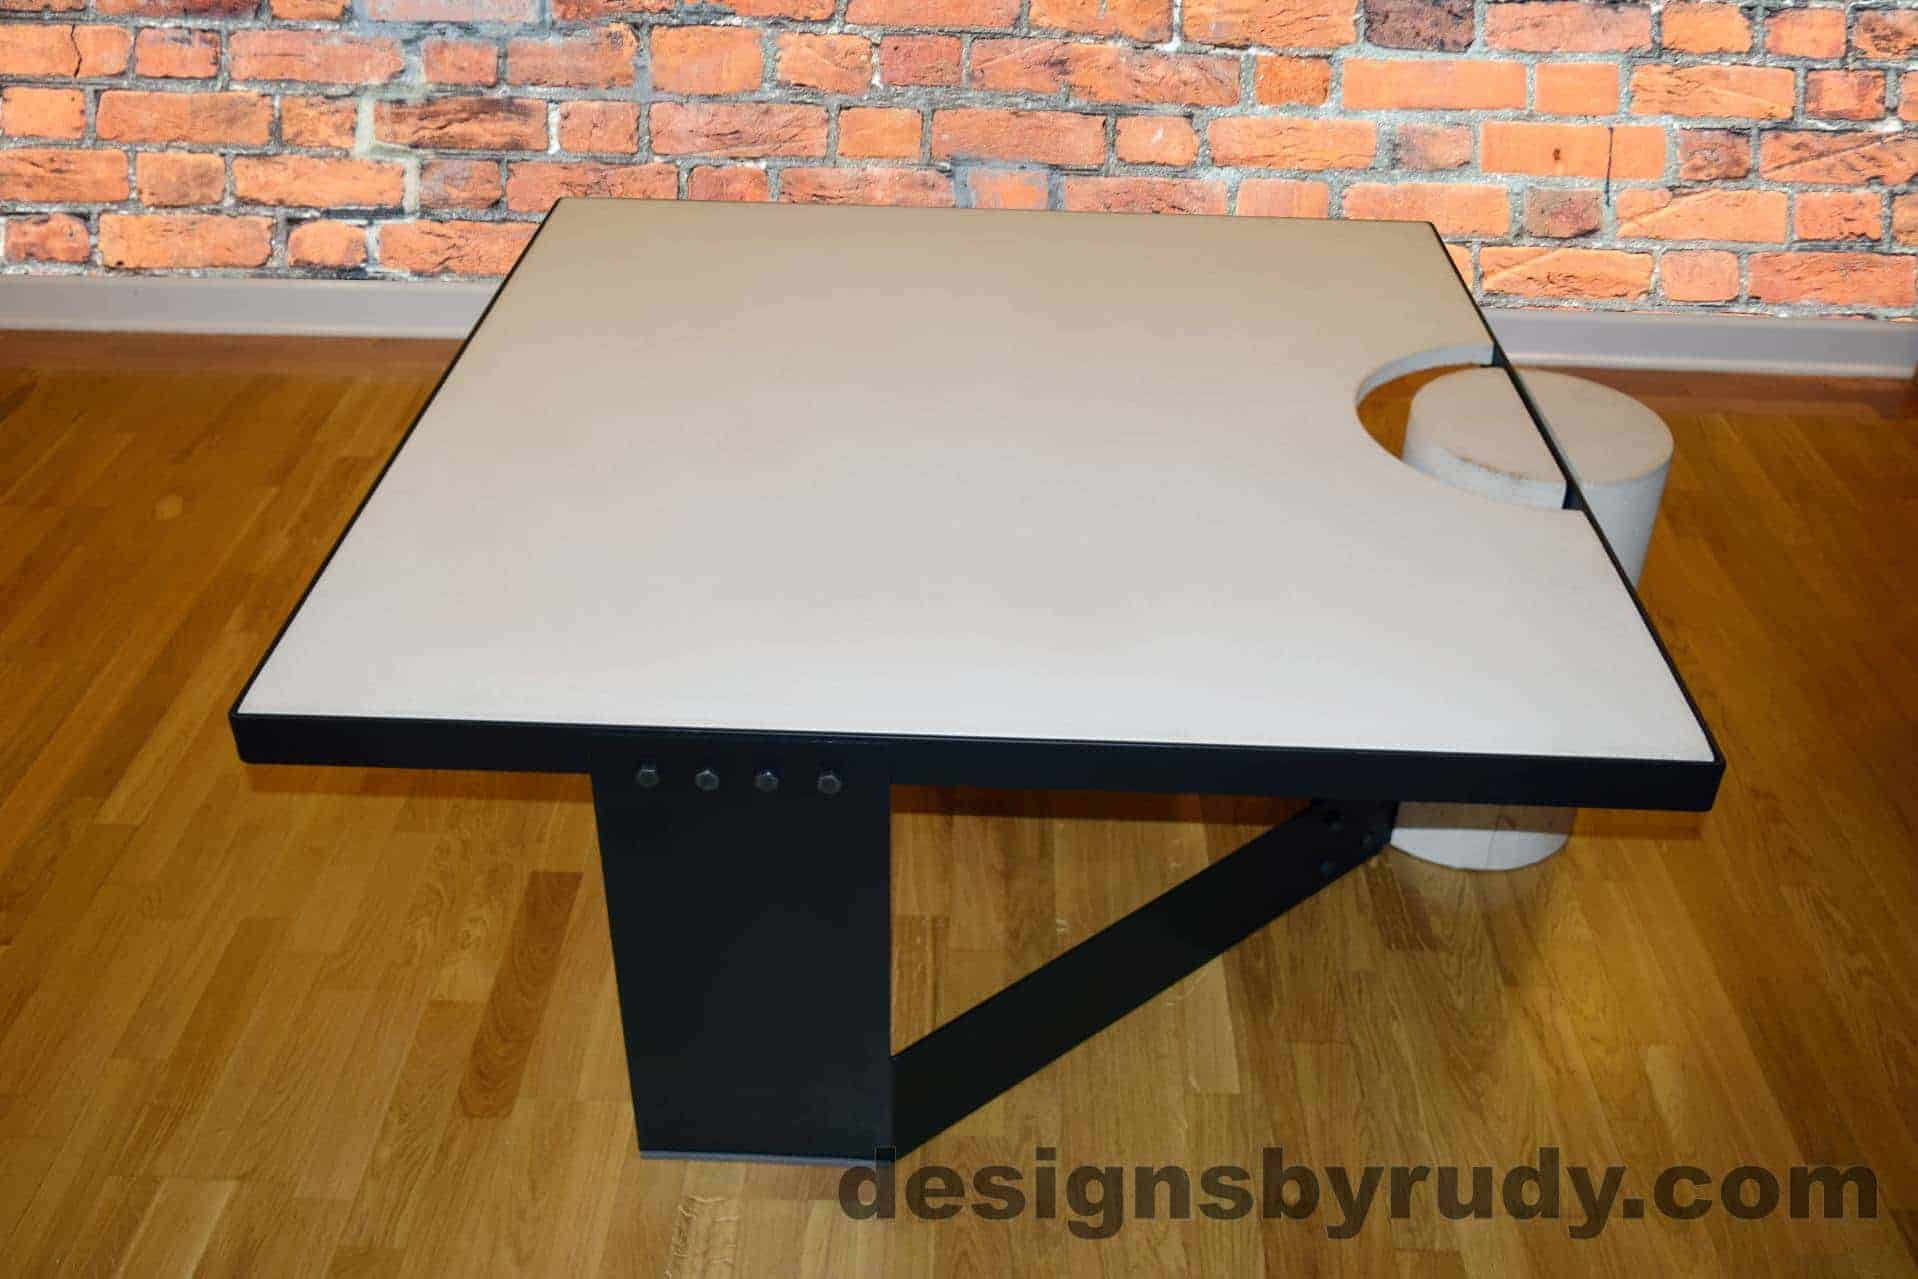 White Concrete Coffee Table Black Steel Frame Full Side View Designs By Rudy